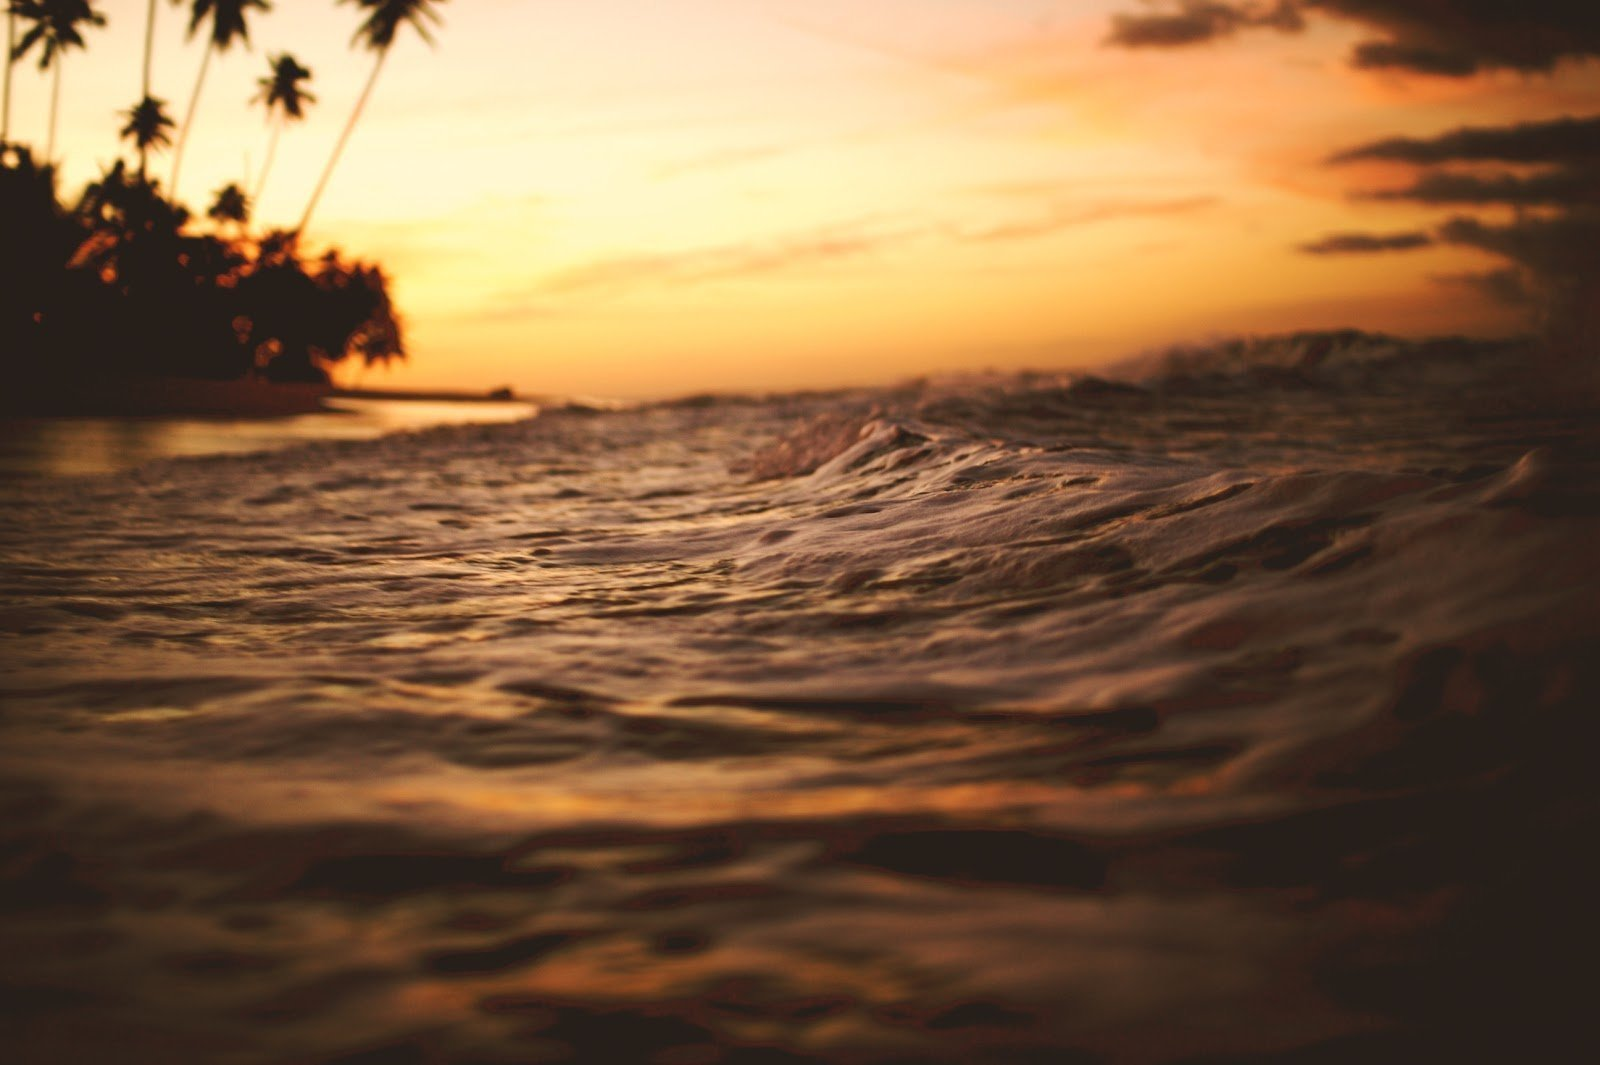 Beach during golden hour photography by Ben Ostrower